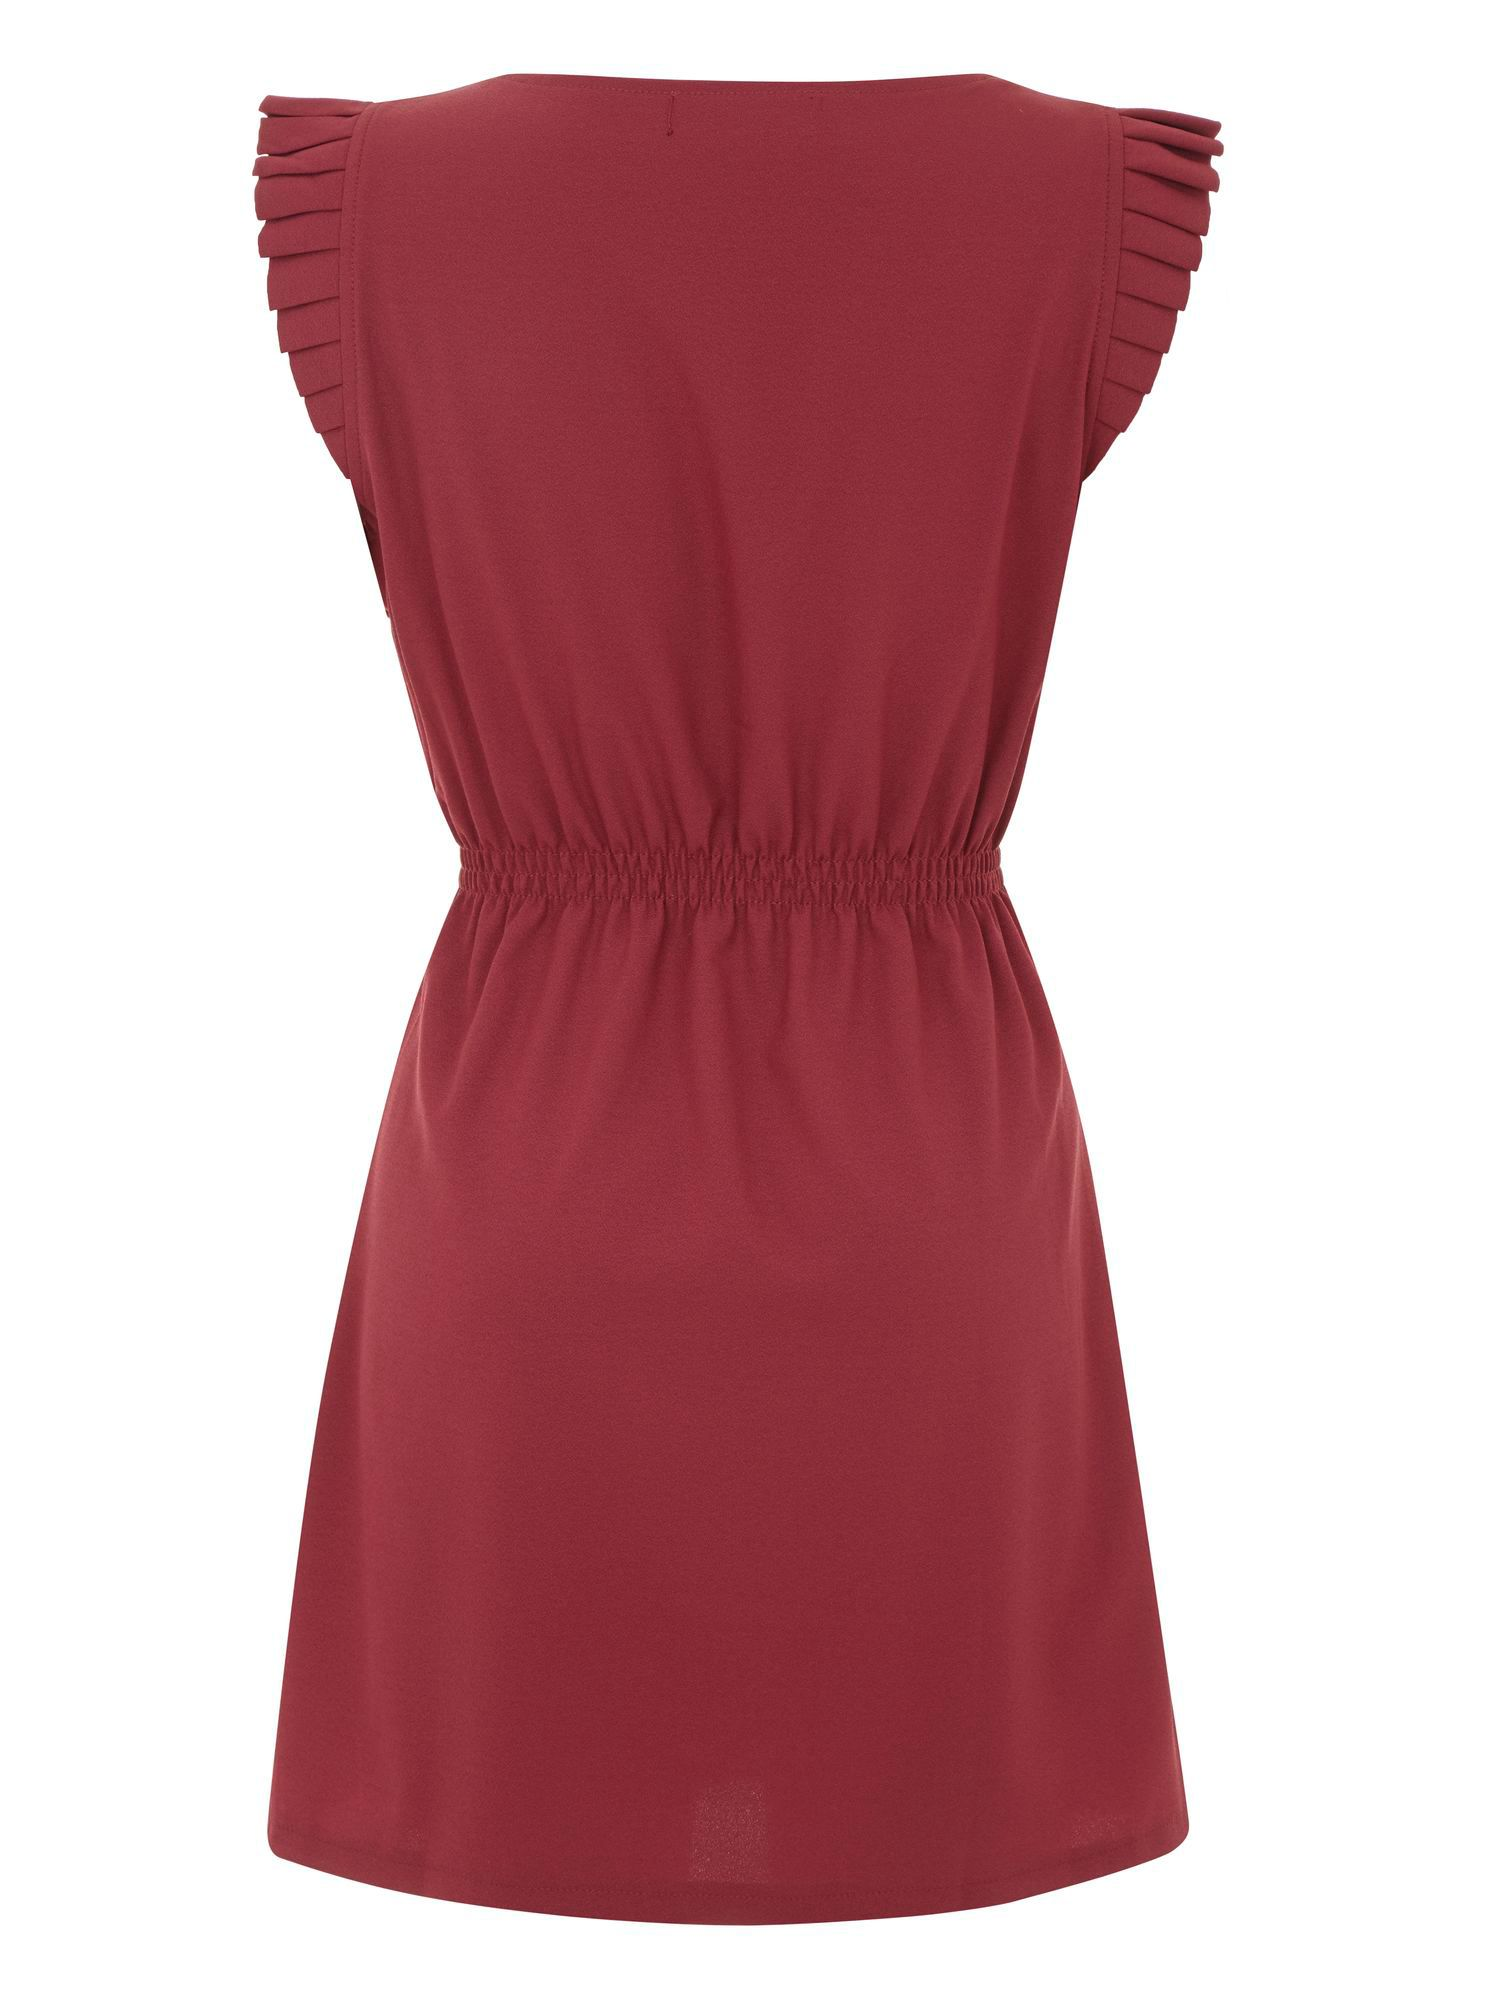 Pleated cap sleeve dress